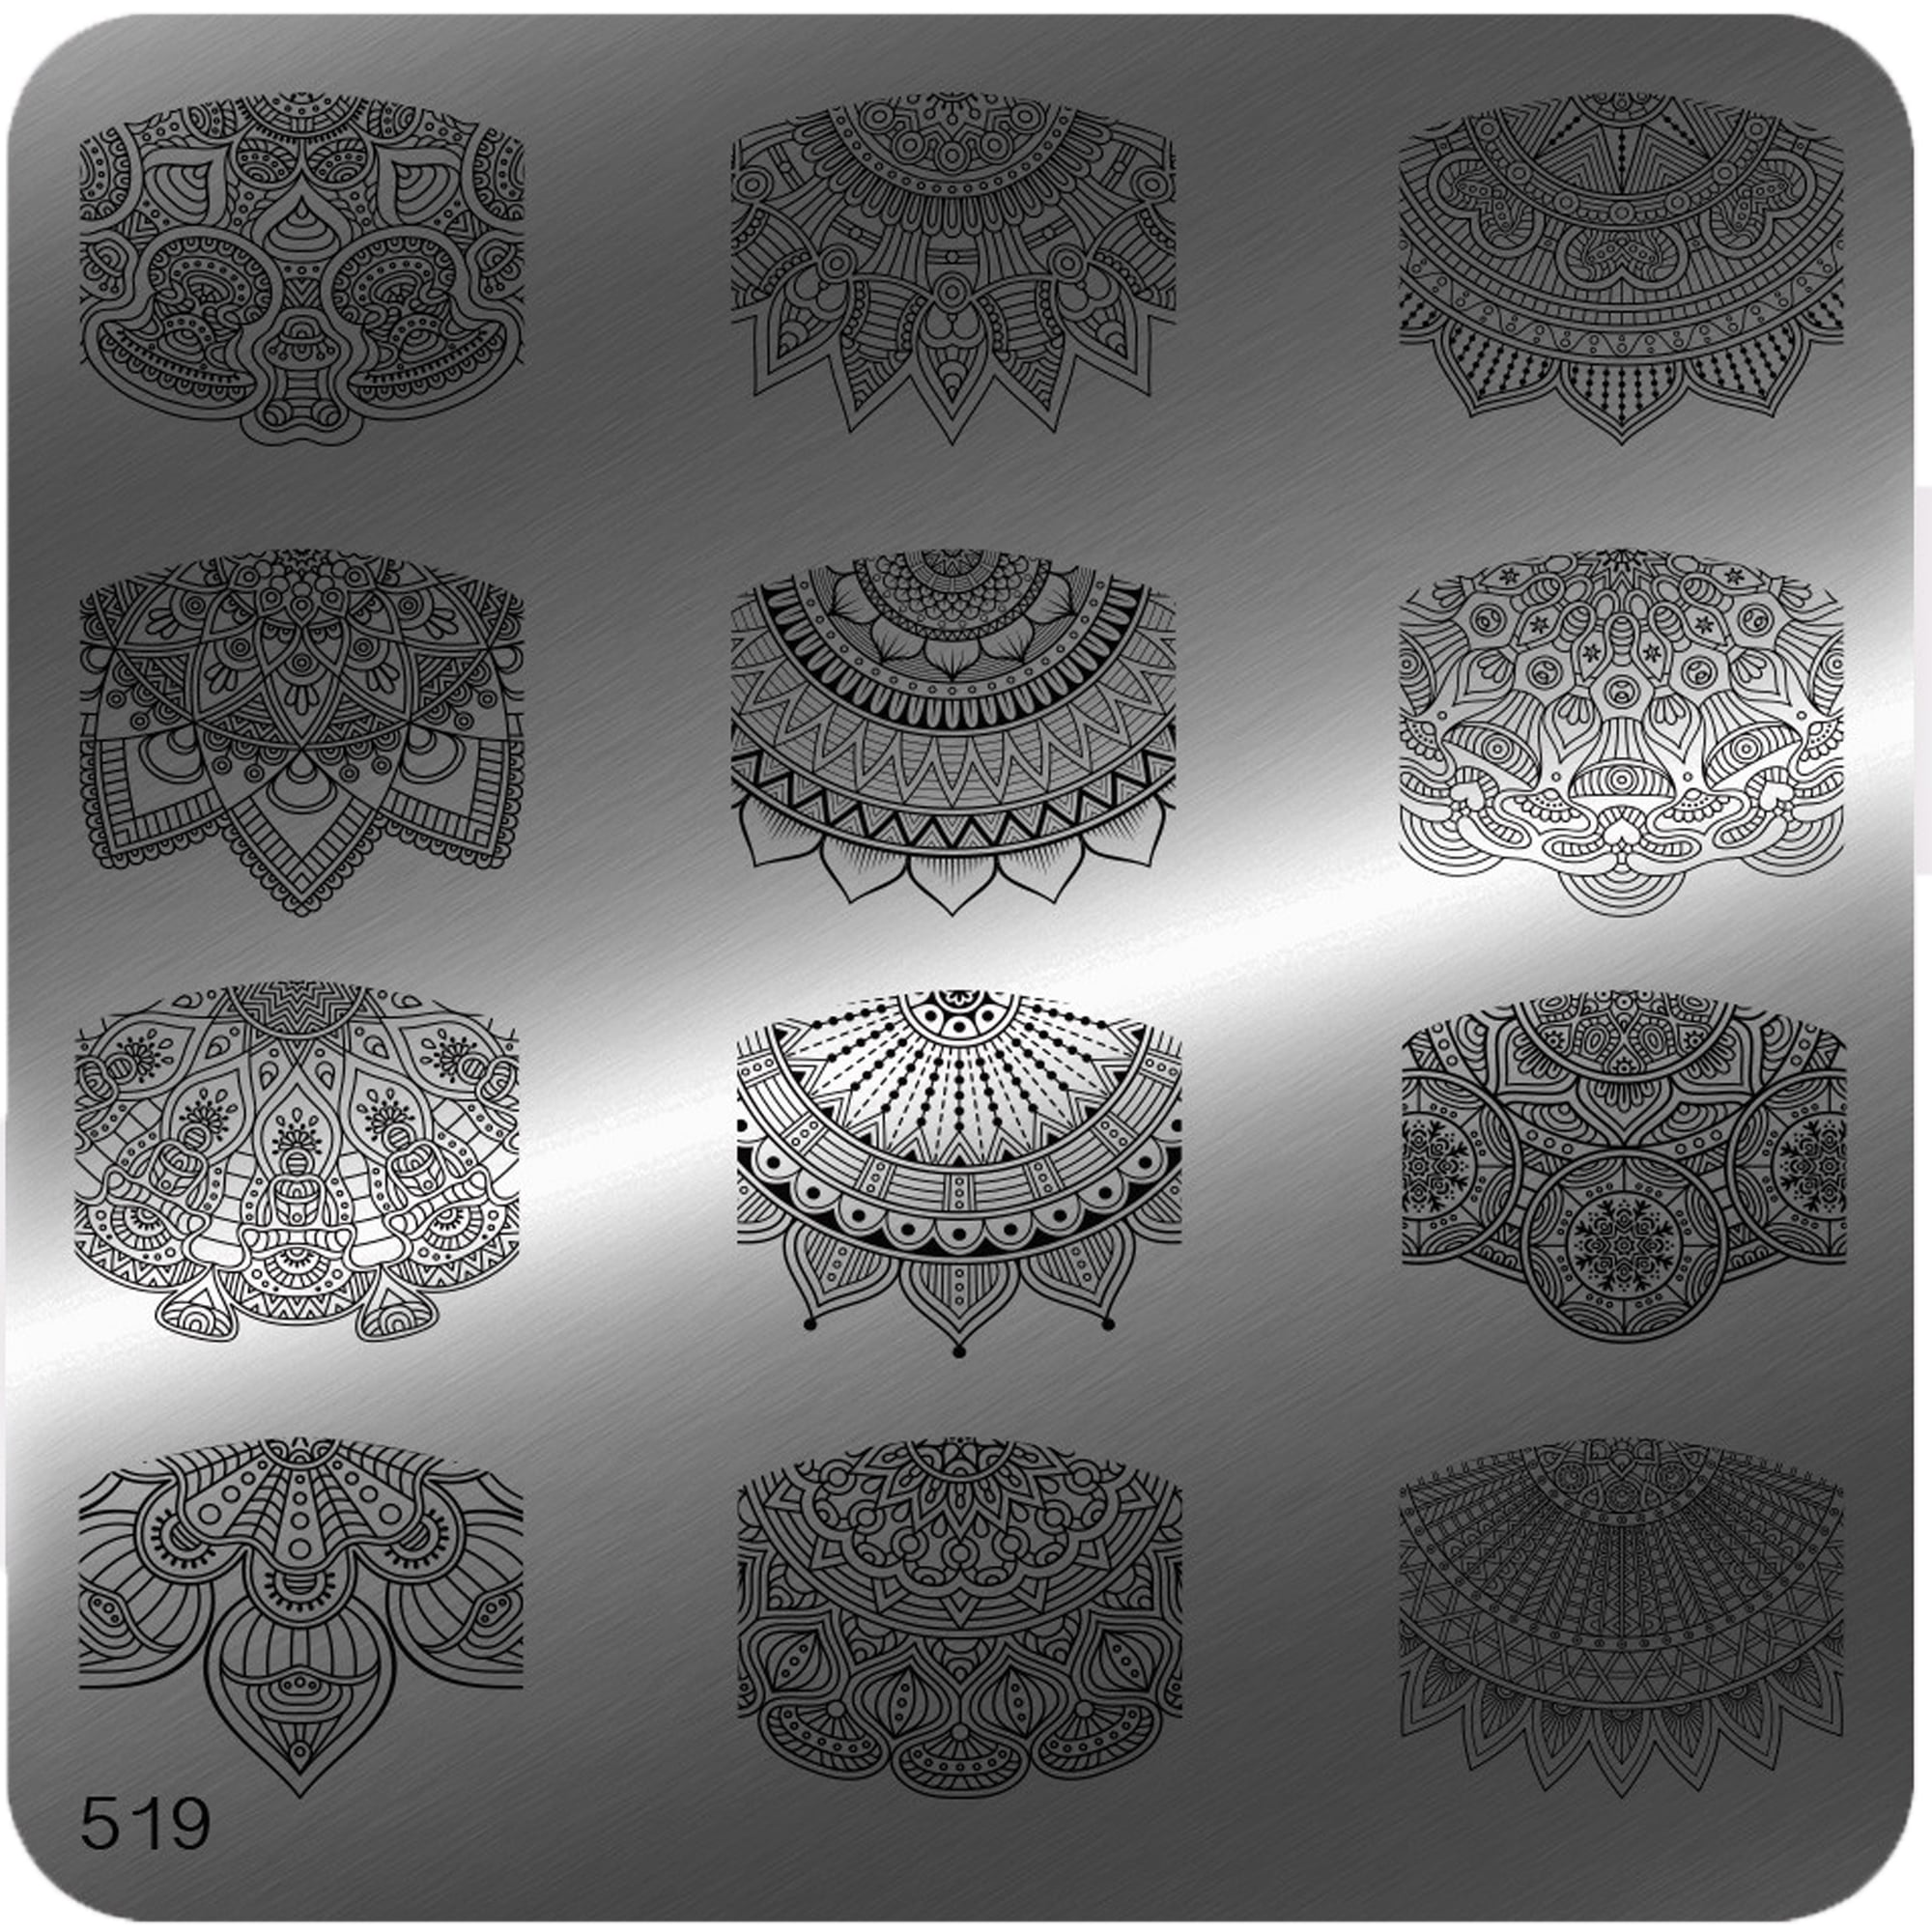 MoYou Square Stamping Nail Art Image Plate - 519